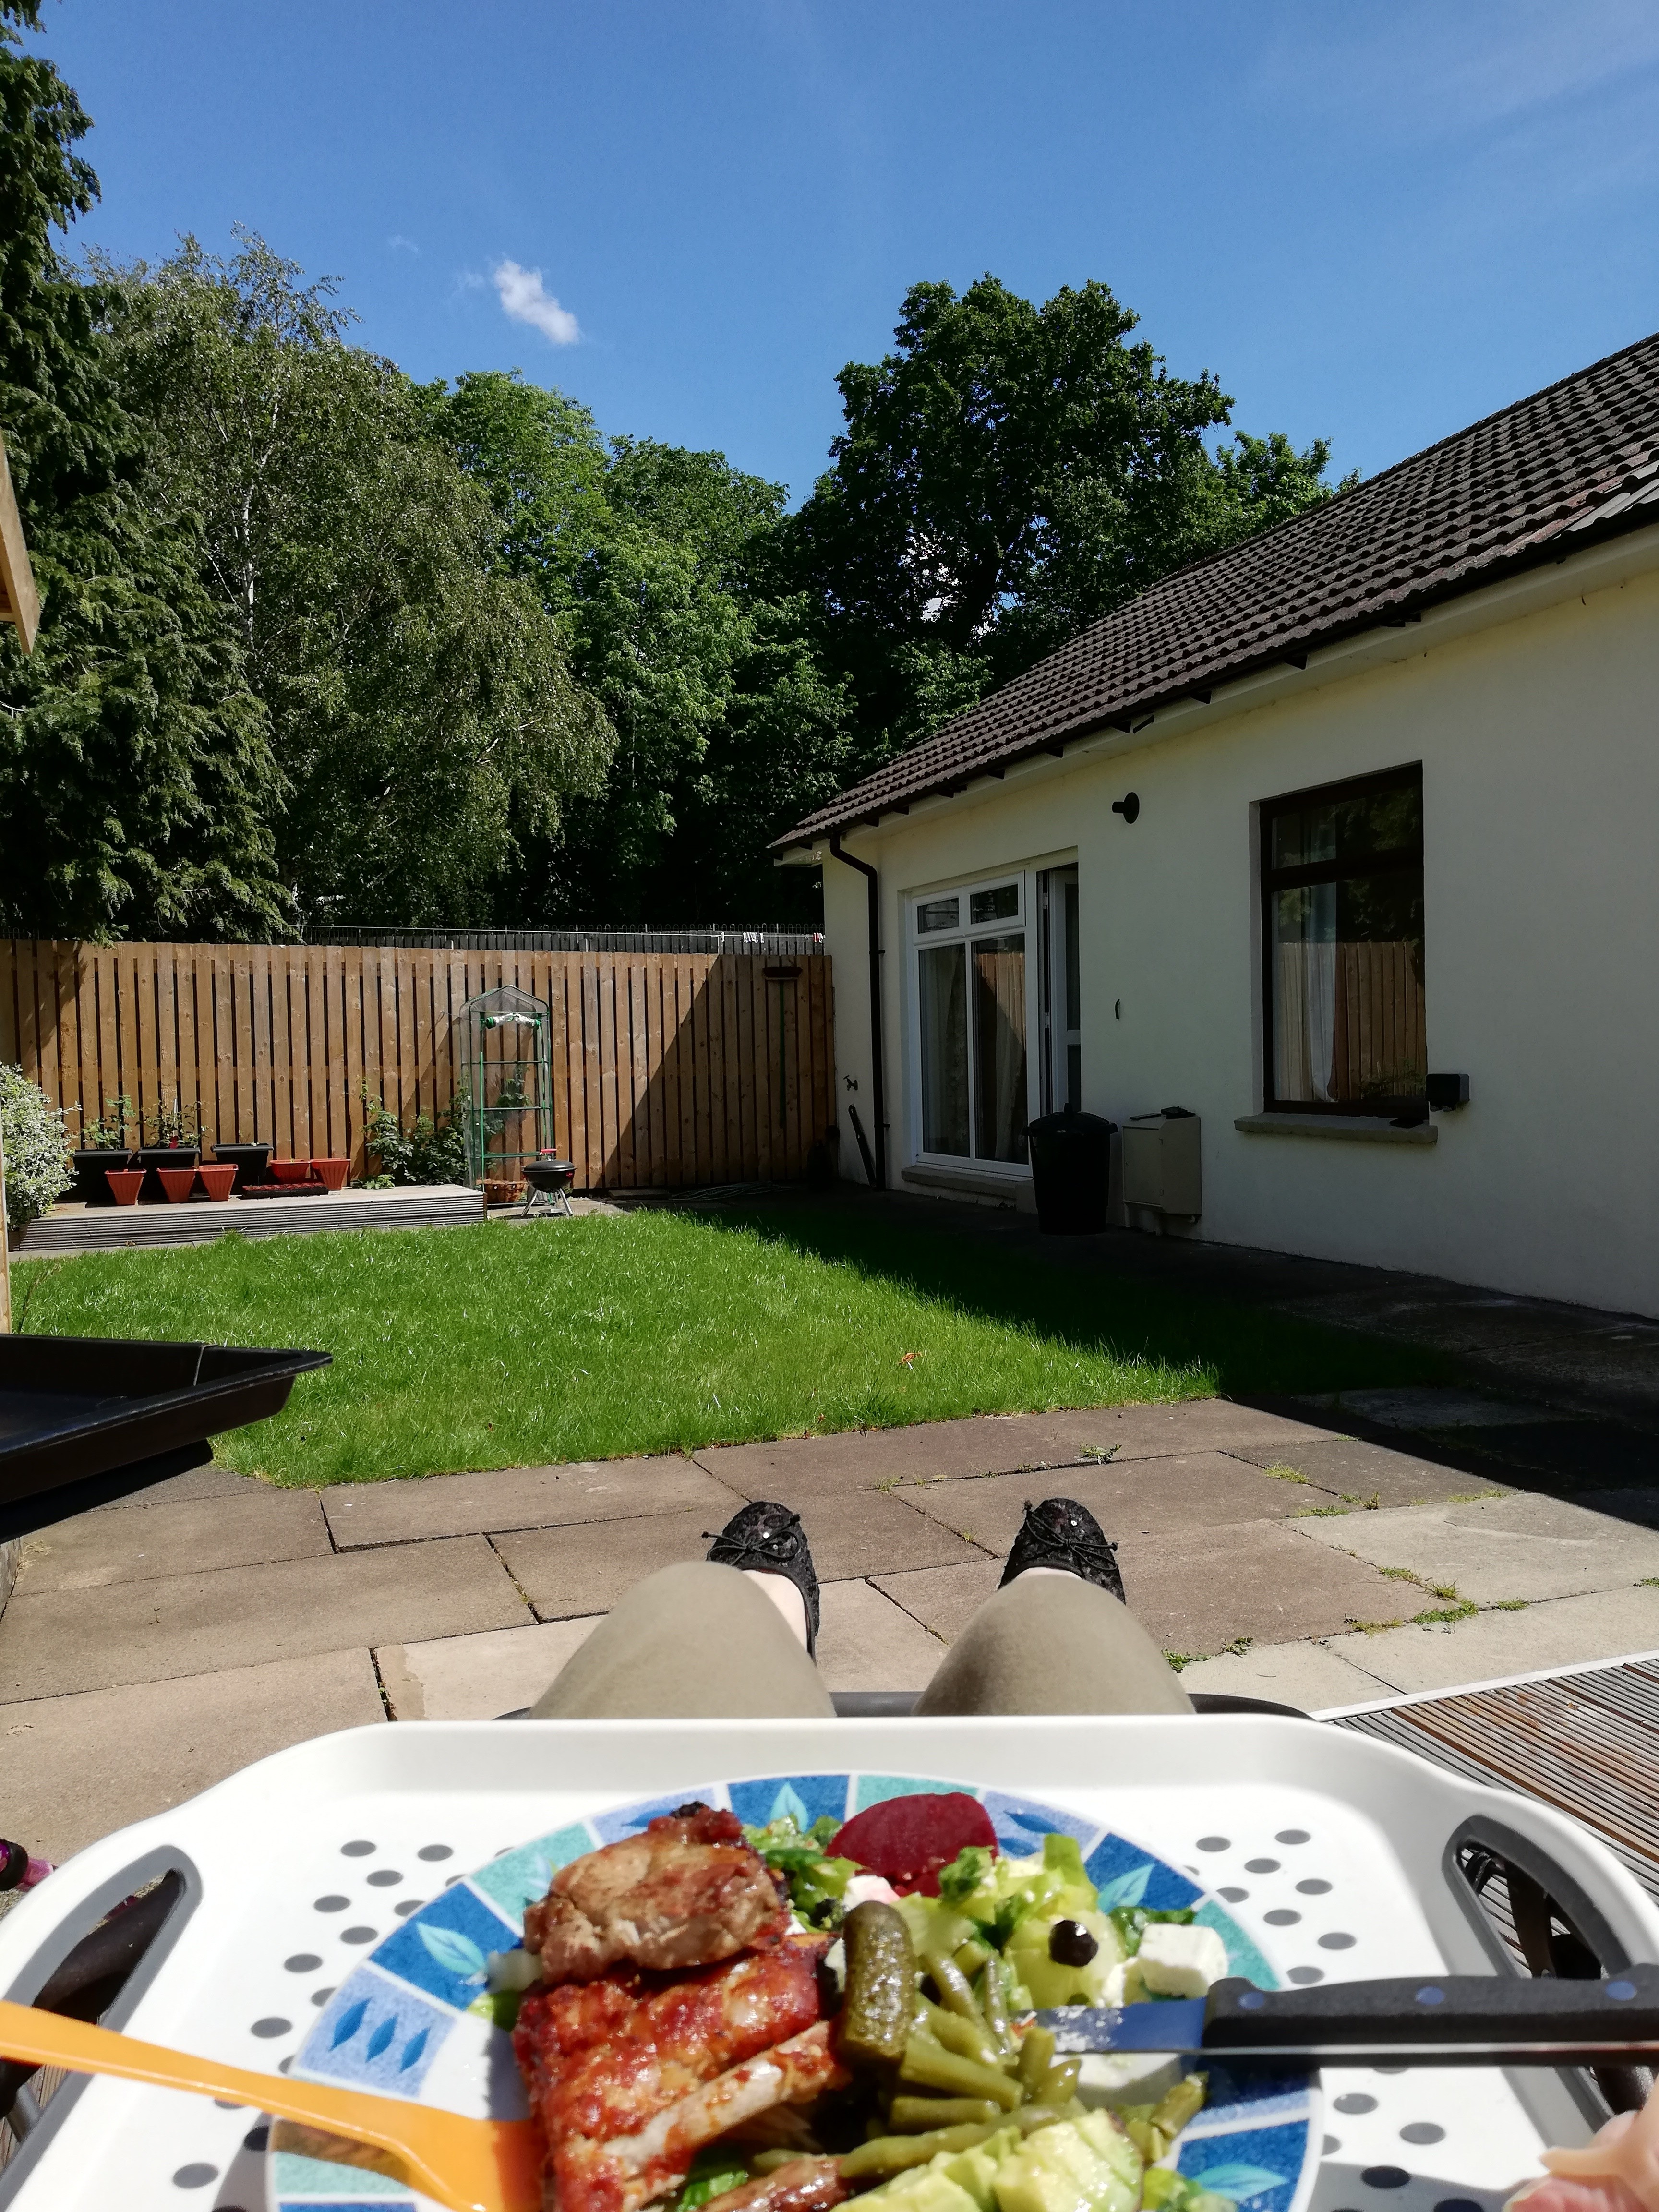 Char's view while lying on the garden recliner. You can see her feet and her plate of food. In the distance a patch of grass, wooden fence and trees in the distance.